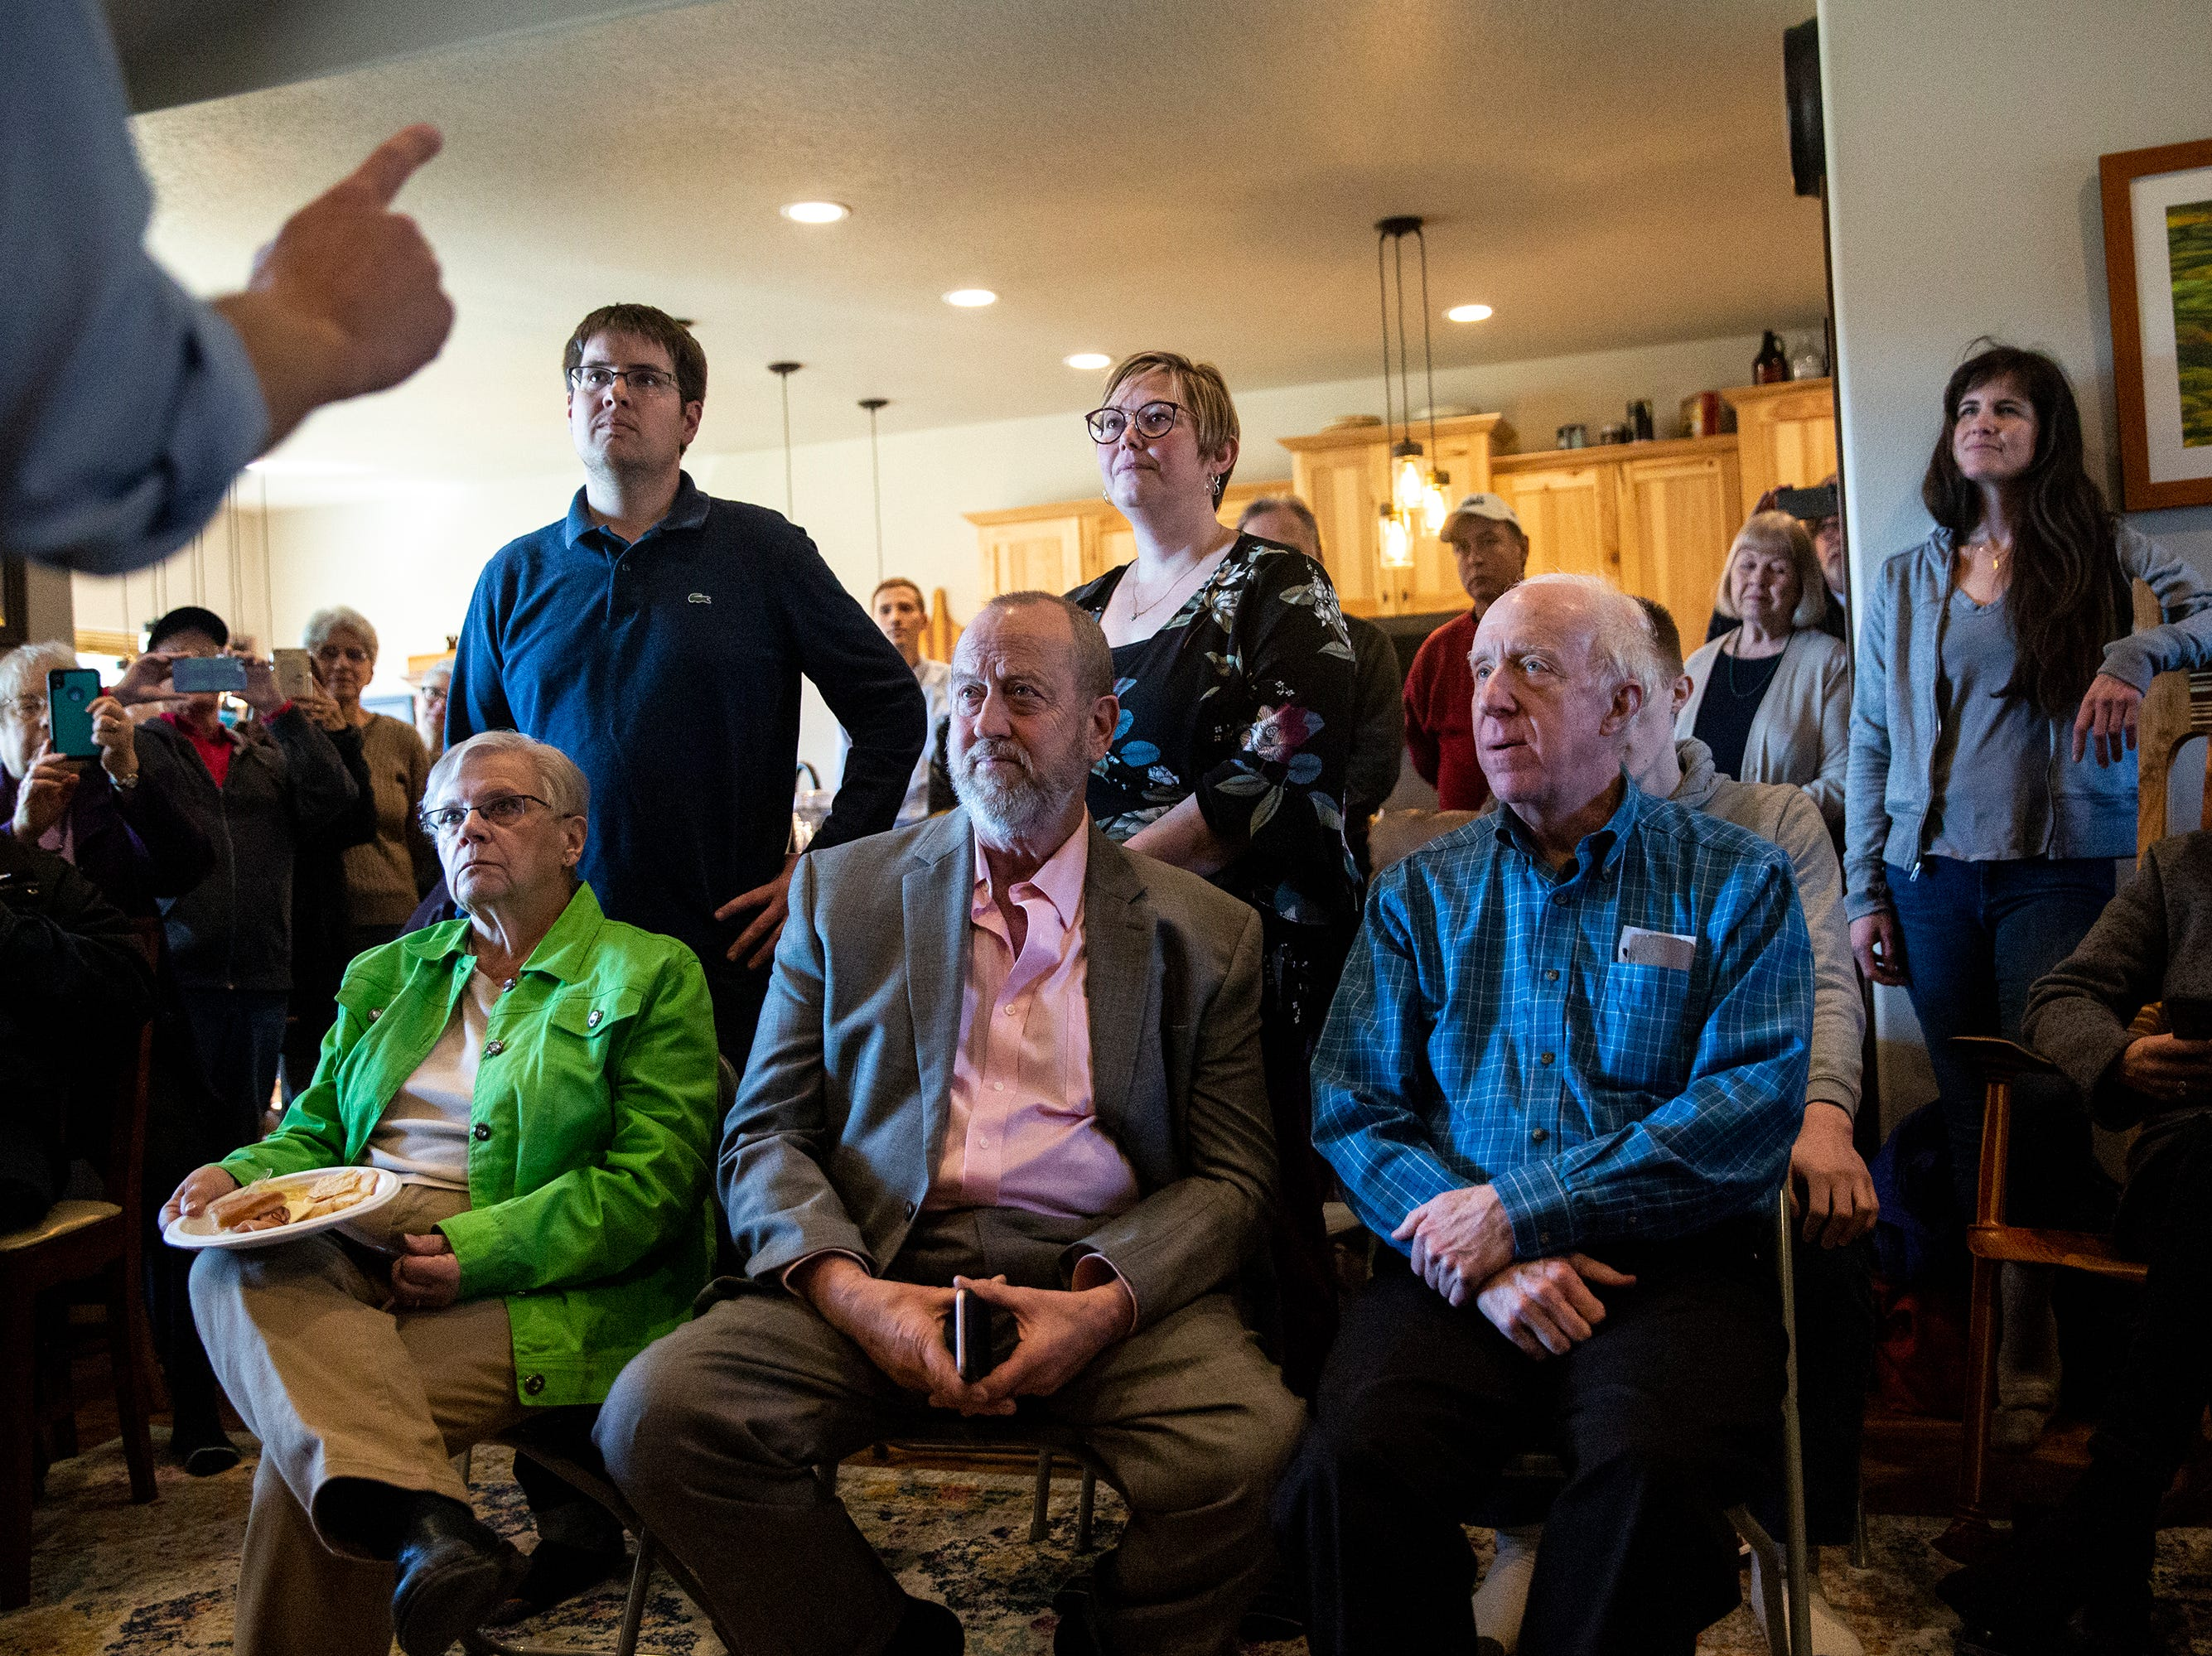 The crowd listens to Beto O'Rourke, Democratic candidate for president, at a house party on Friday, March 15, 2019, in Fairfield. This is O'Rourke's first trip to Iowa after announcing his campaign.